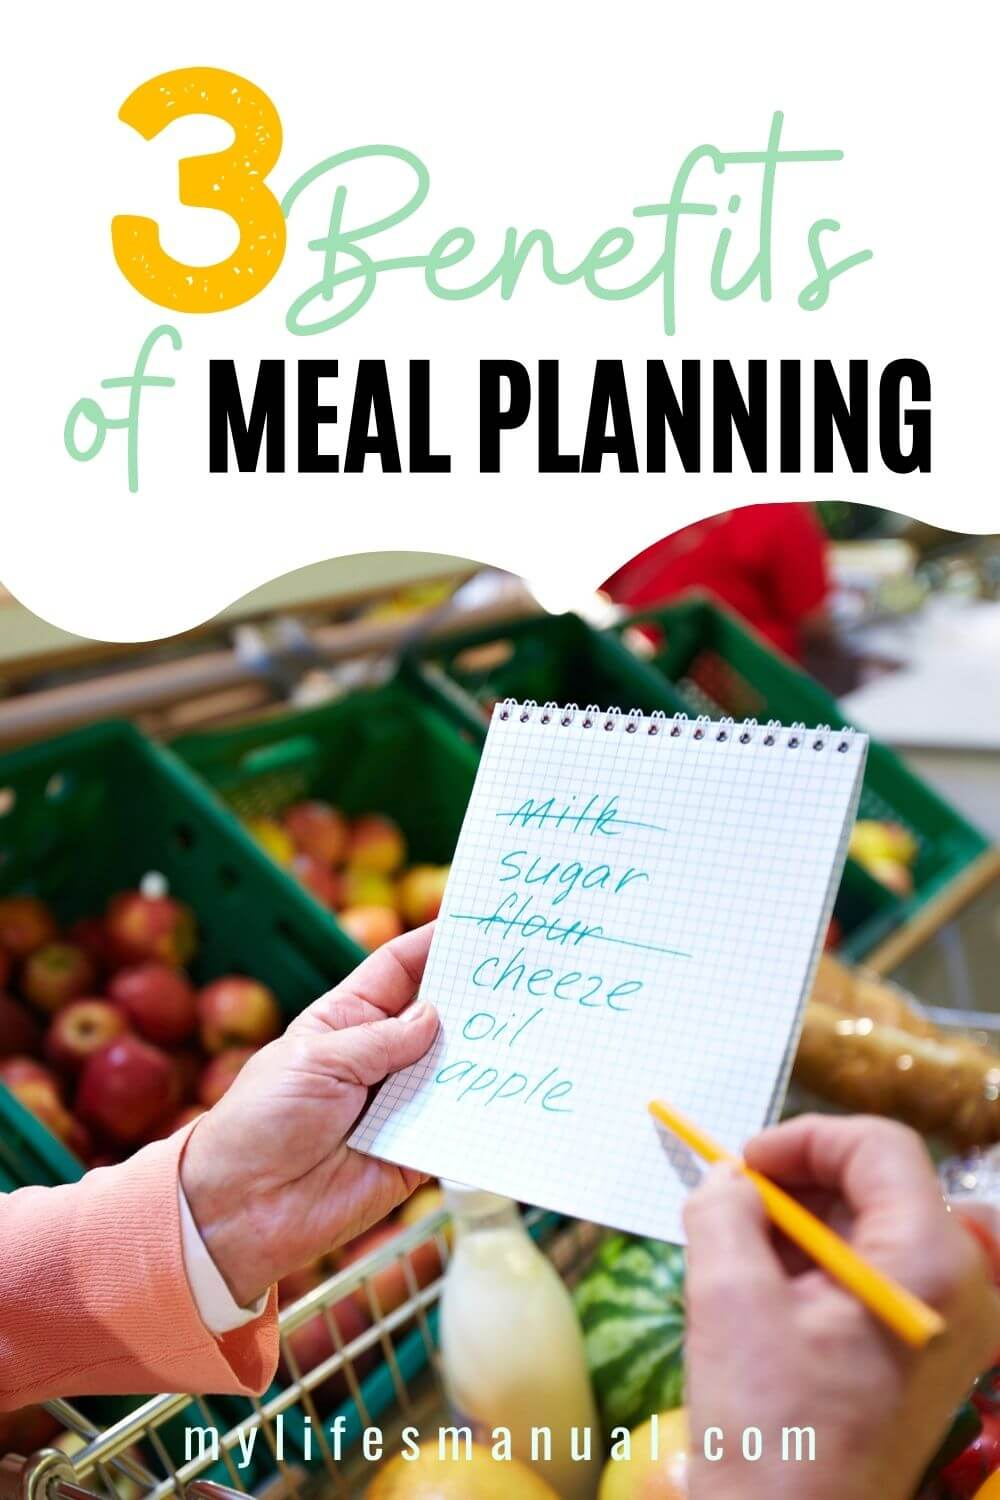 Meal planning benefits. Learn why you should get started with meal planning